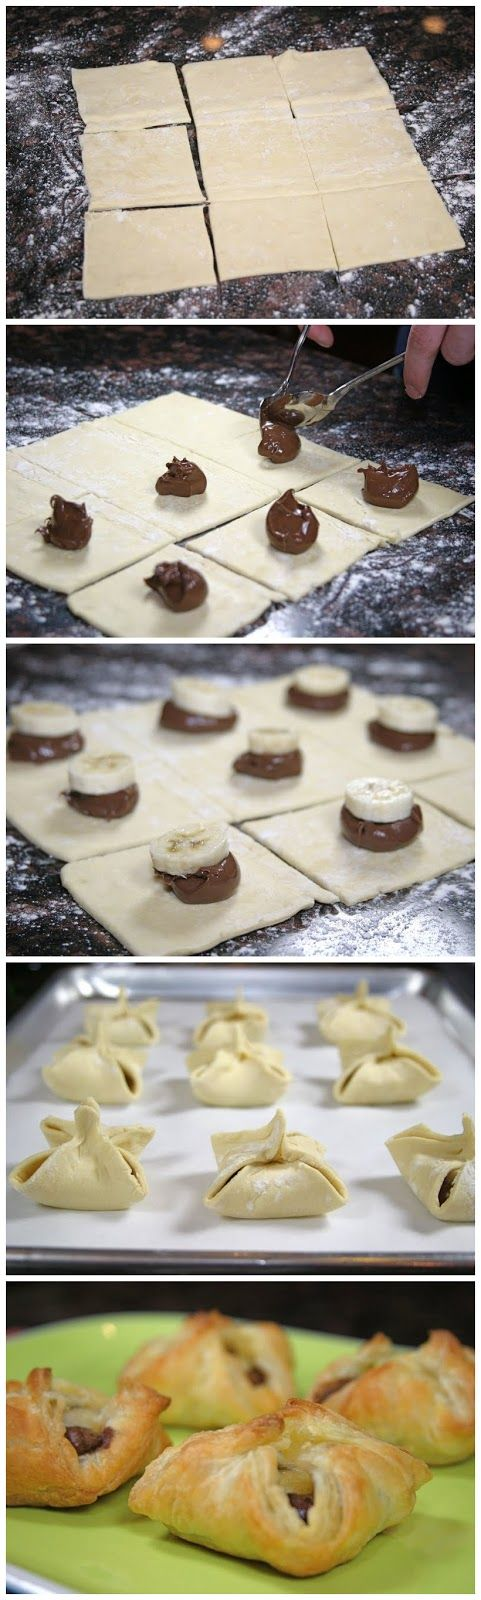 Nutella and Banana Pastry